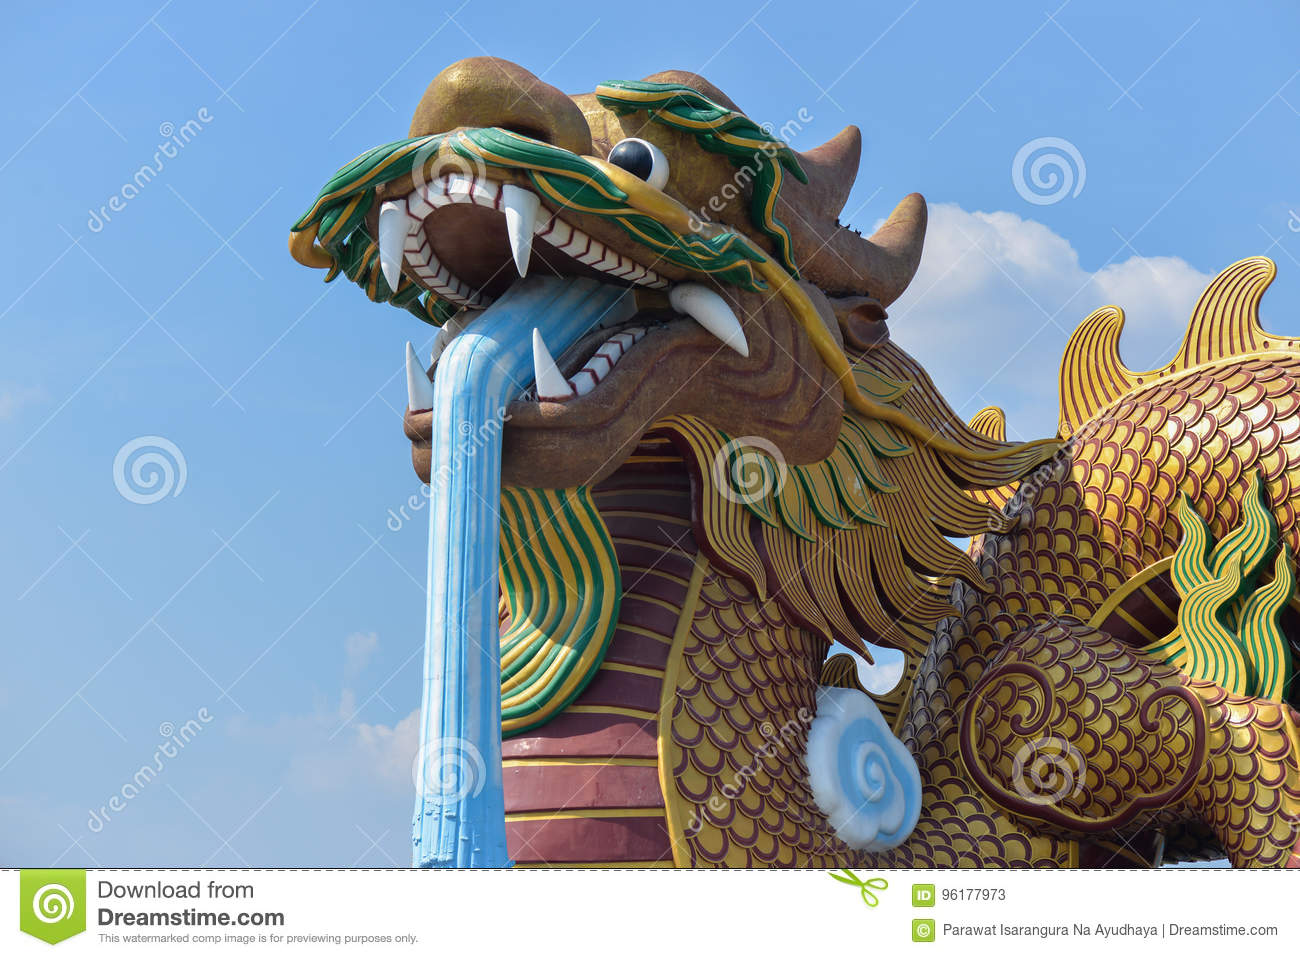 Giant Dragon Statue Giant Chinese Dragon Statue In Thailand Stock Image Image Of